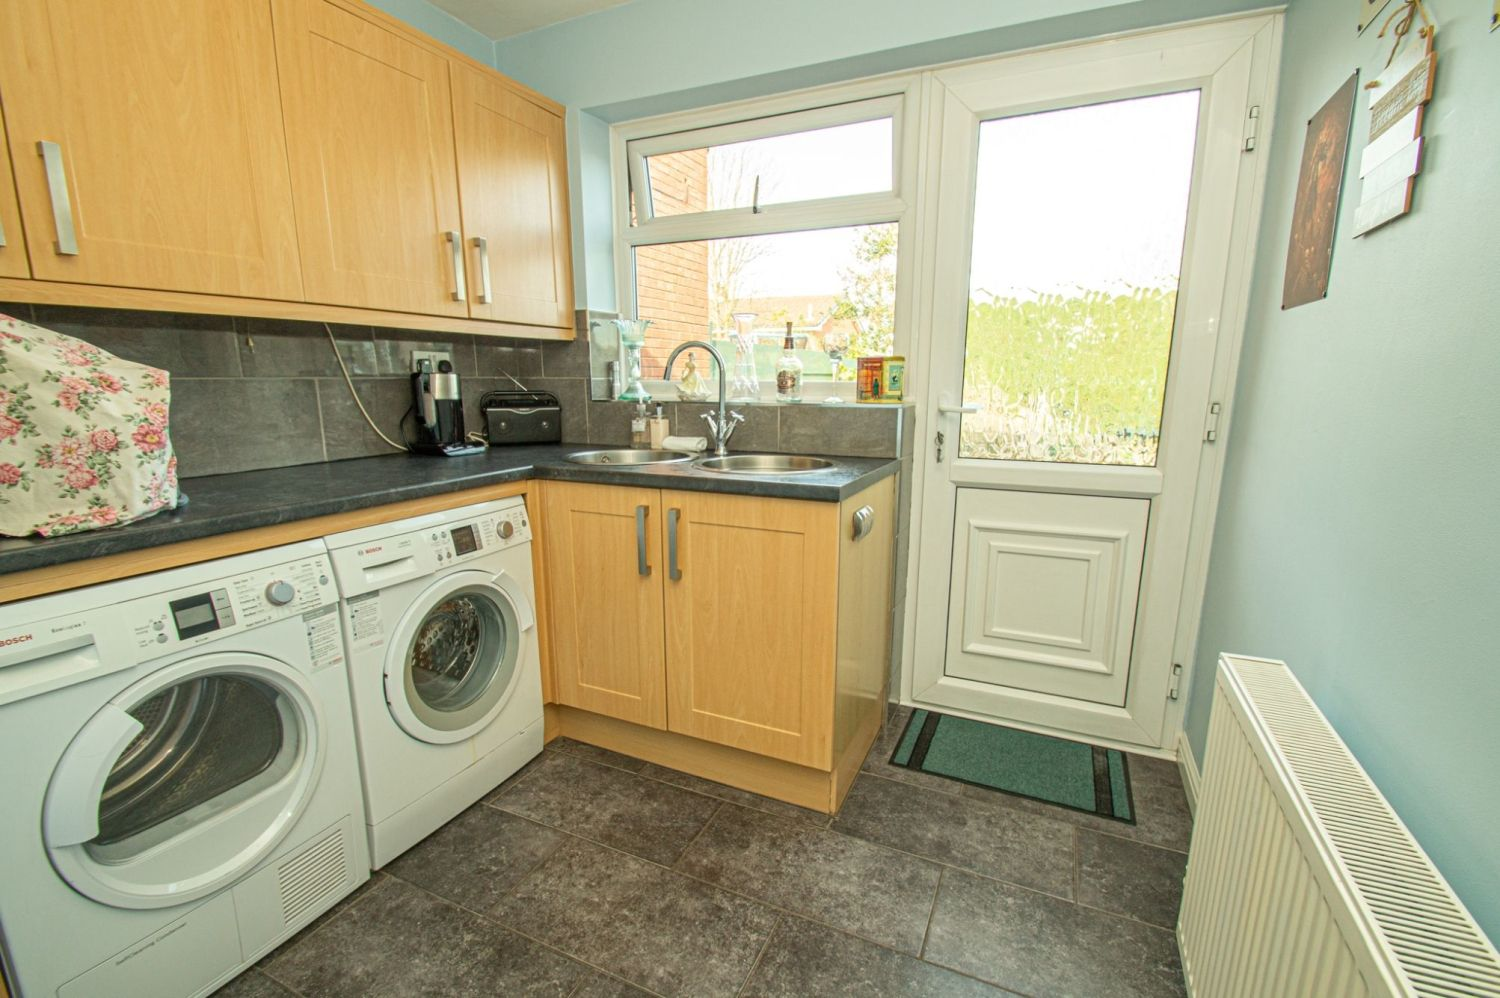 3 bed detached for sale in Broomehill Close, Brierley Hill  - Property Image 7